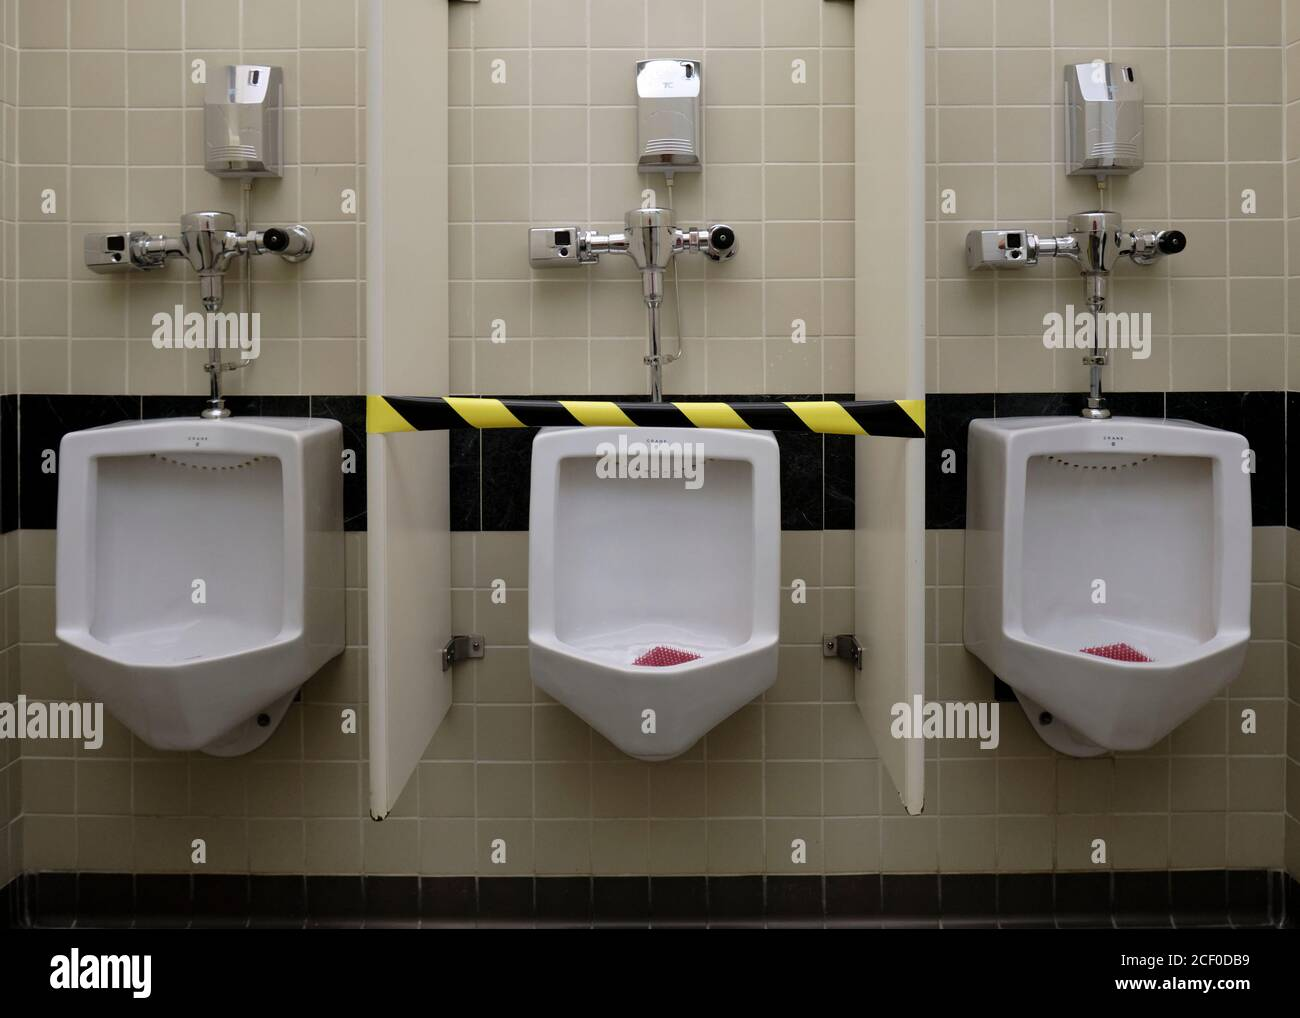 set-of-three-urinals-with-the-middle-one-taped-up-and-out-of-usage-based-on-covid-19-health-guidelines-2CF0DB9.jpg